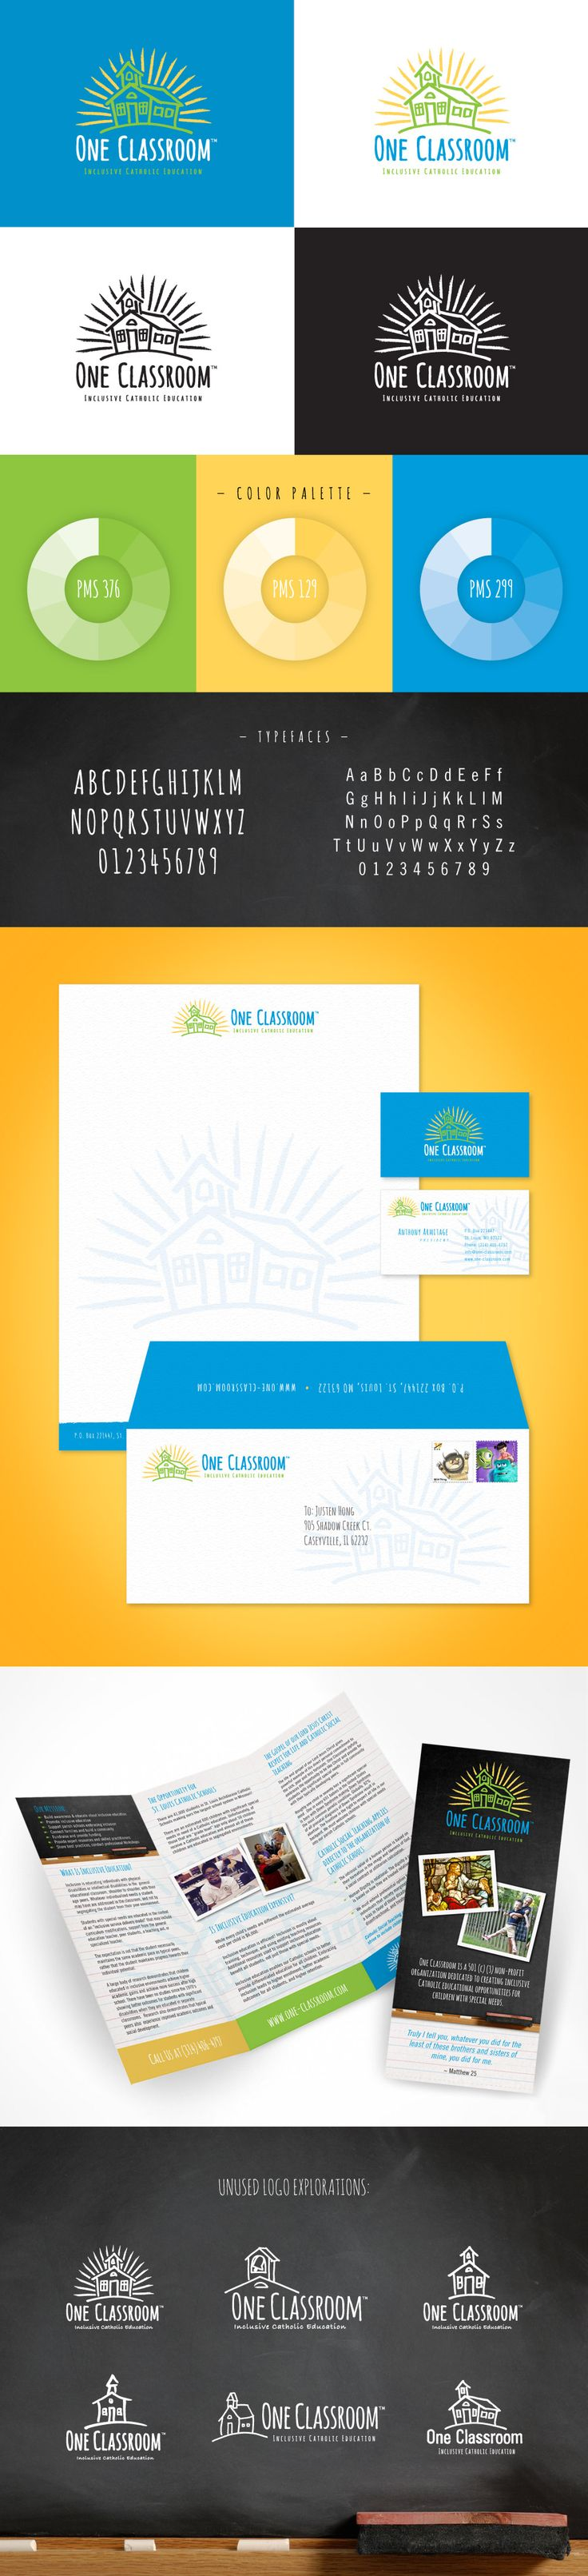 Classroom Logo Design : Images about visual lure s design work on pinterest